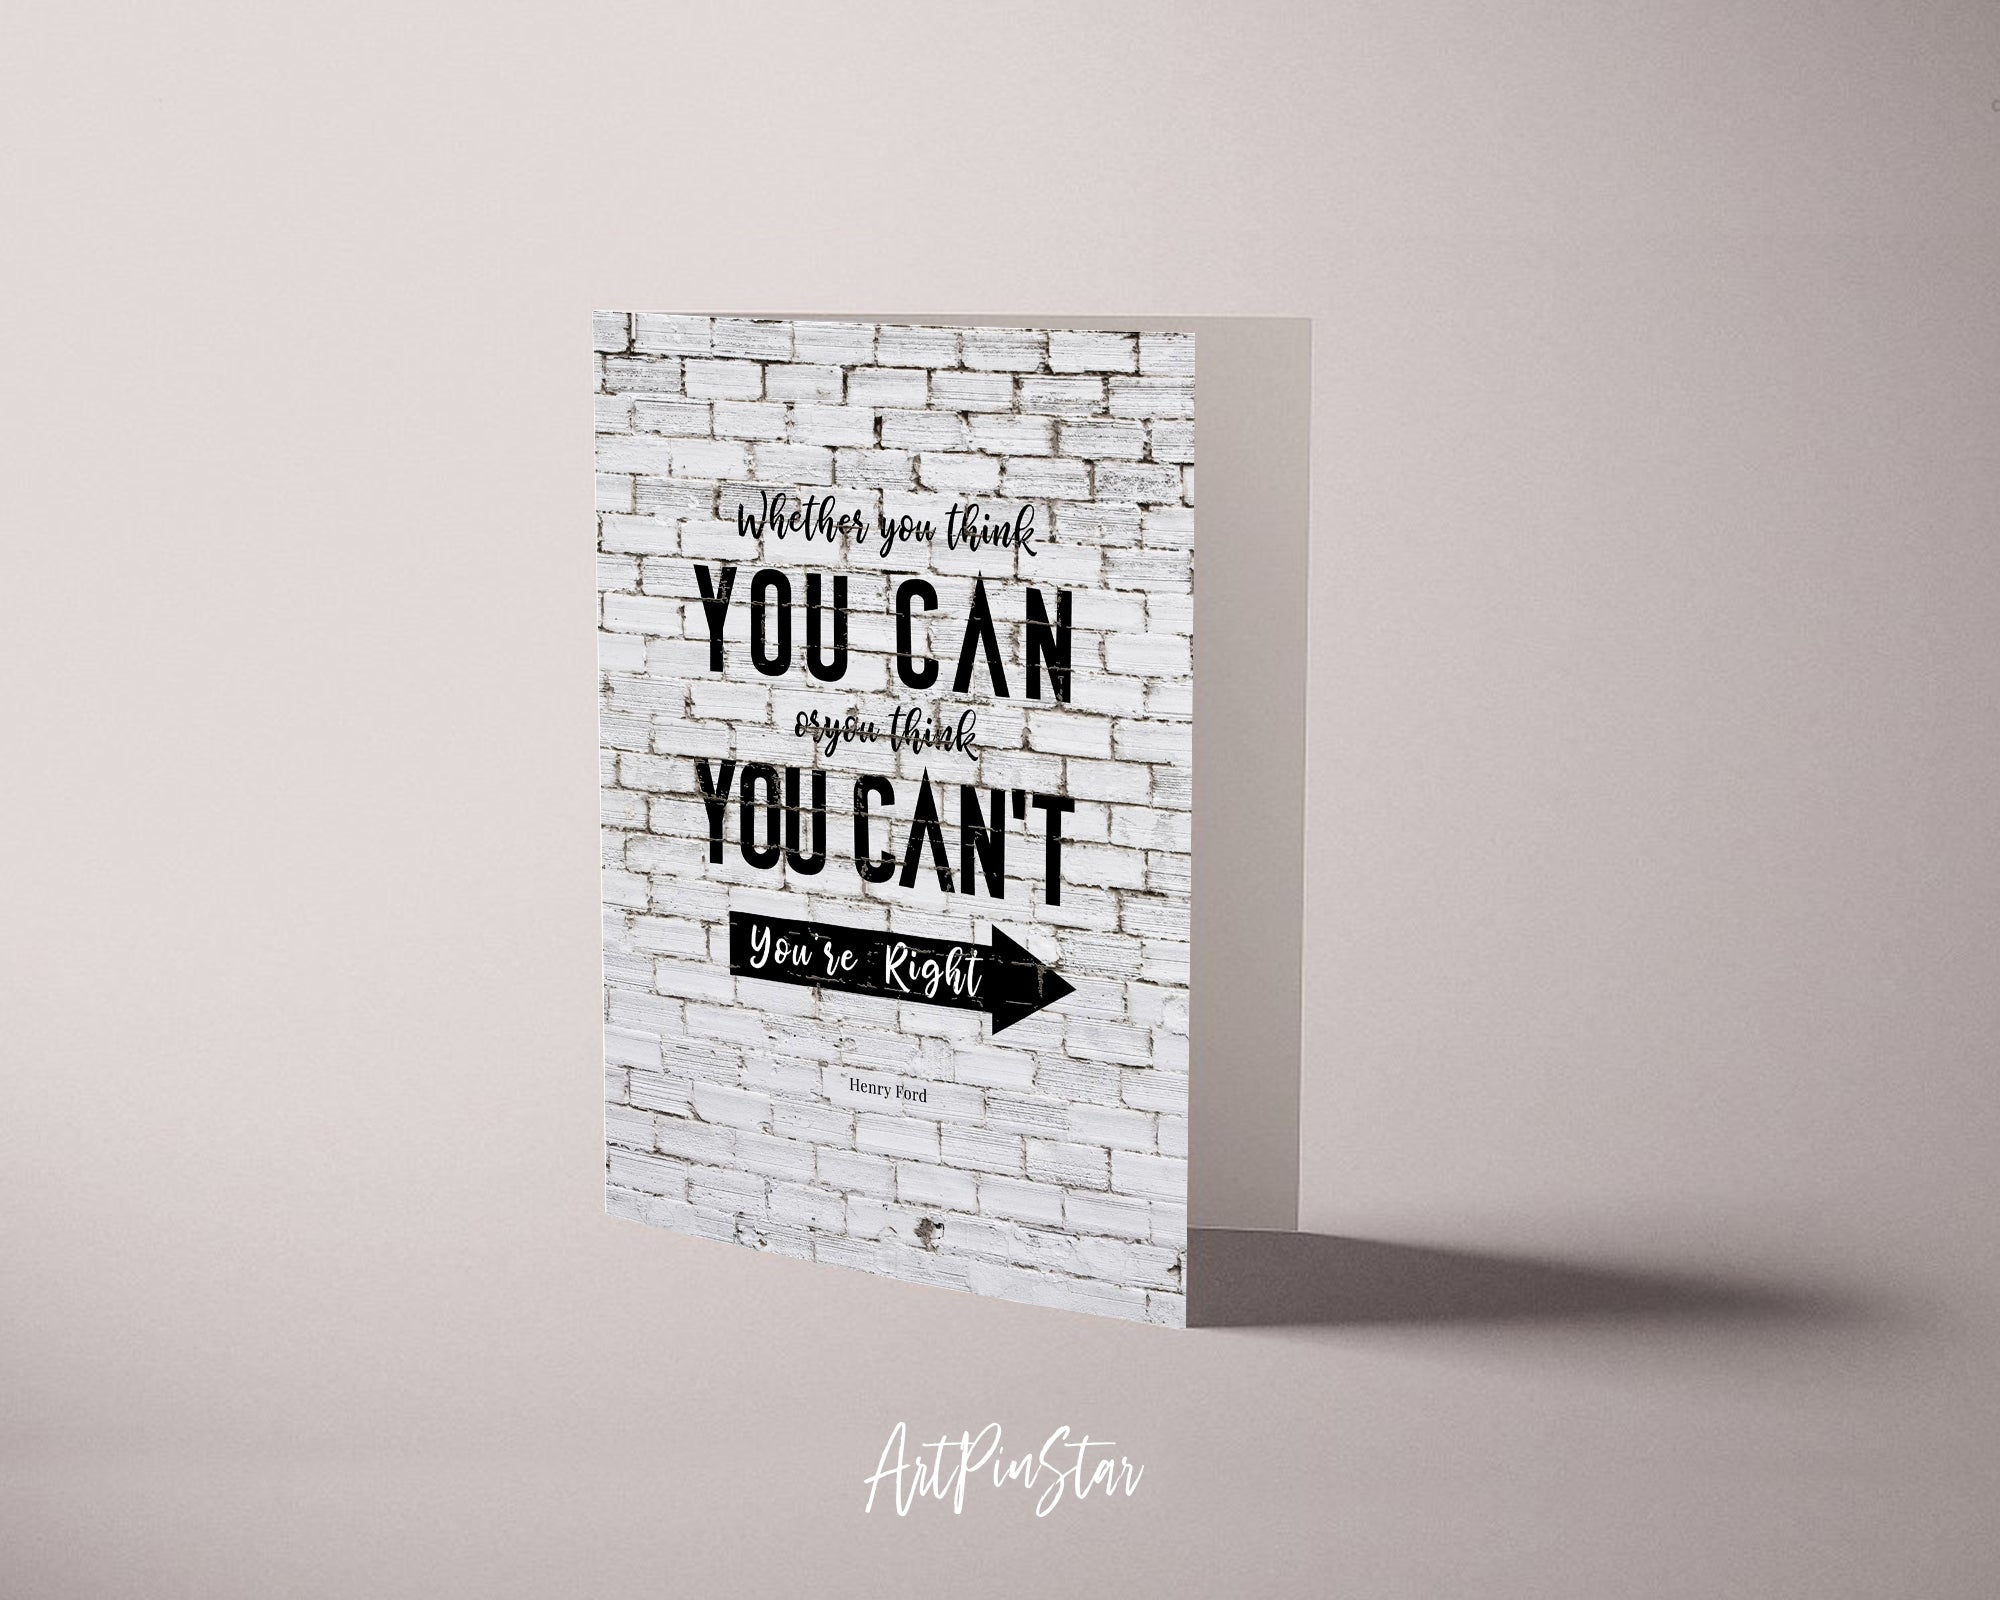 Whether you think you can Henry Ford Motivational Customized Greeting Card